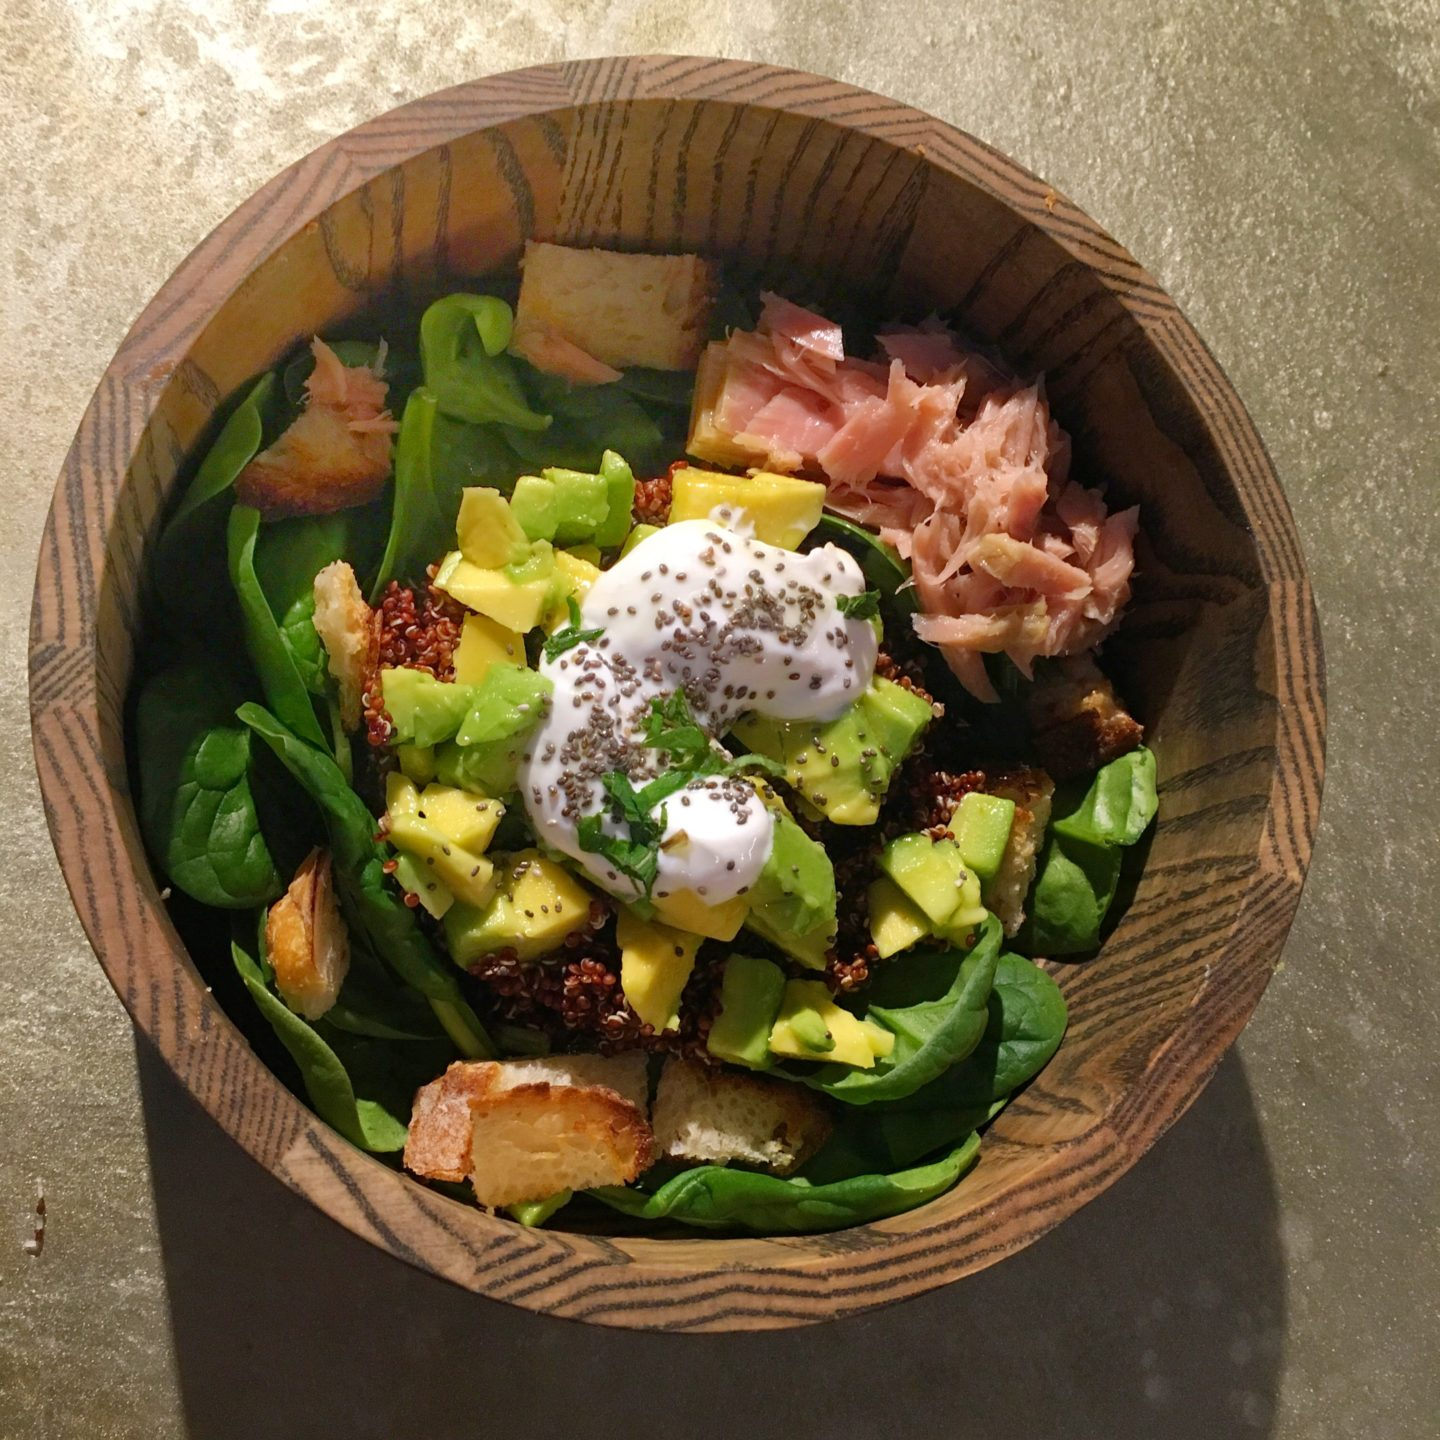 My Top Healthy Restaurants in Miami